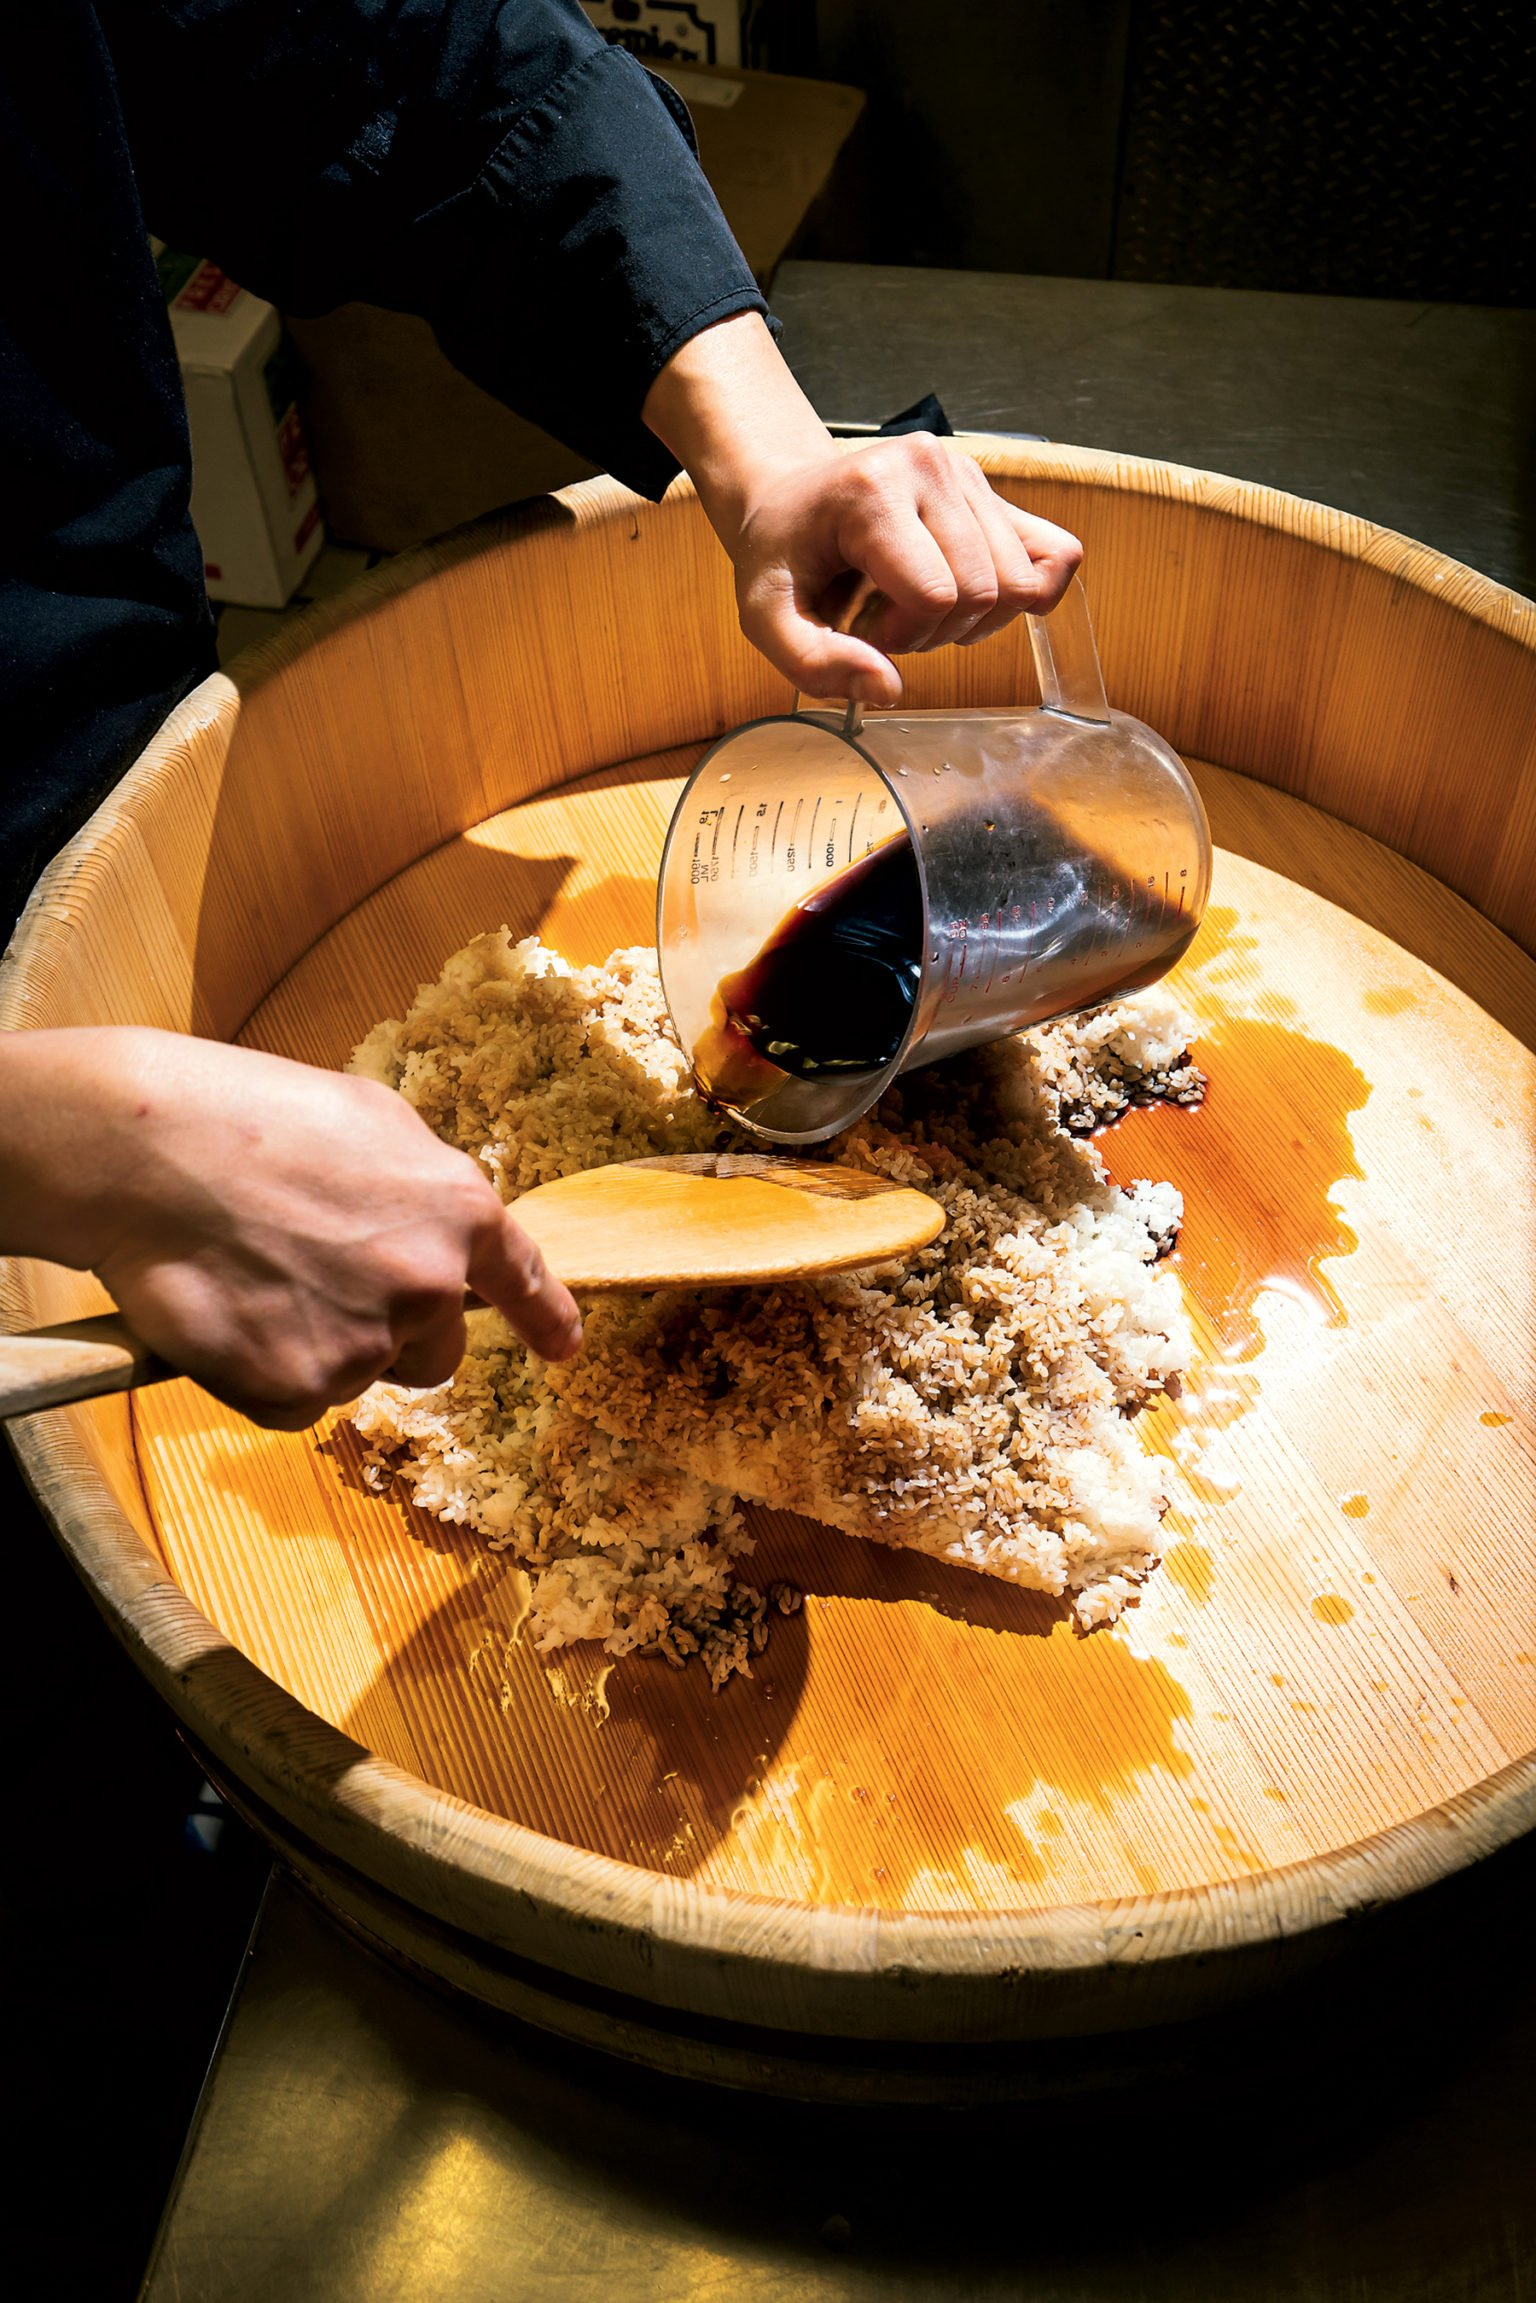 Rice takes on a dark color thanks to red vinegar aged three to six years from sake lees (sediment). Kobo is the only area restaurant that uses the prized product.